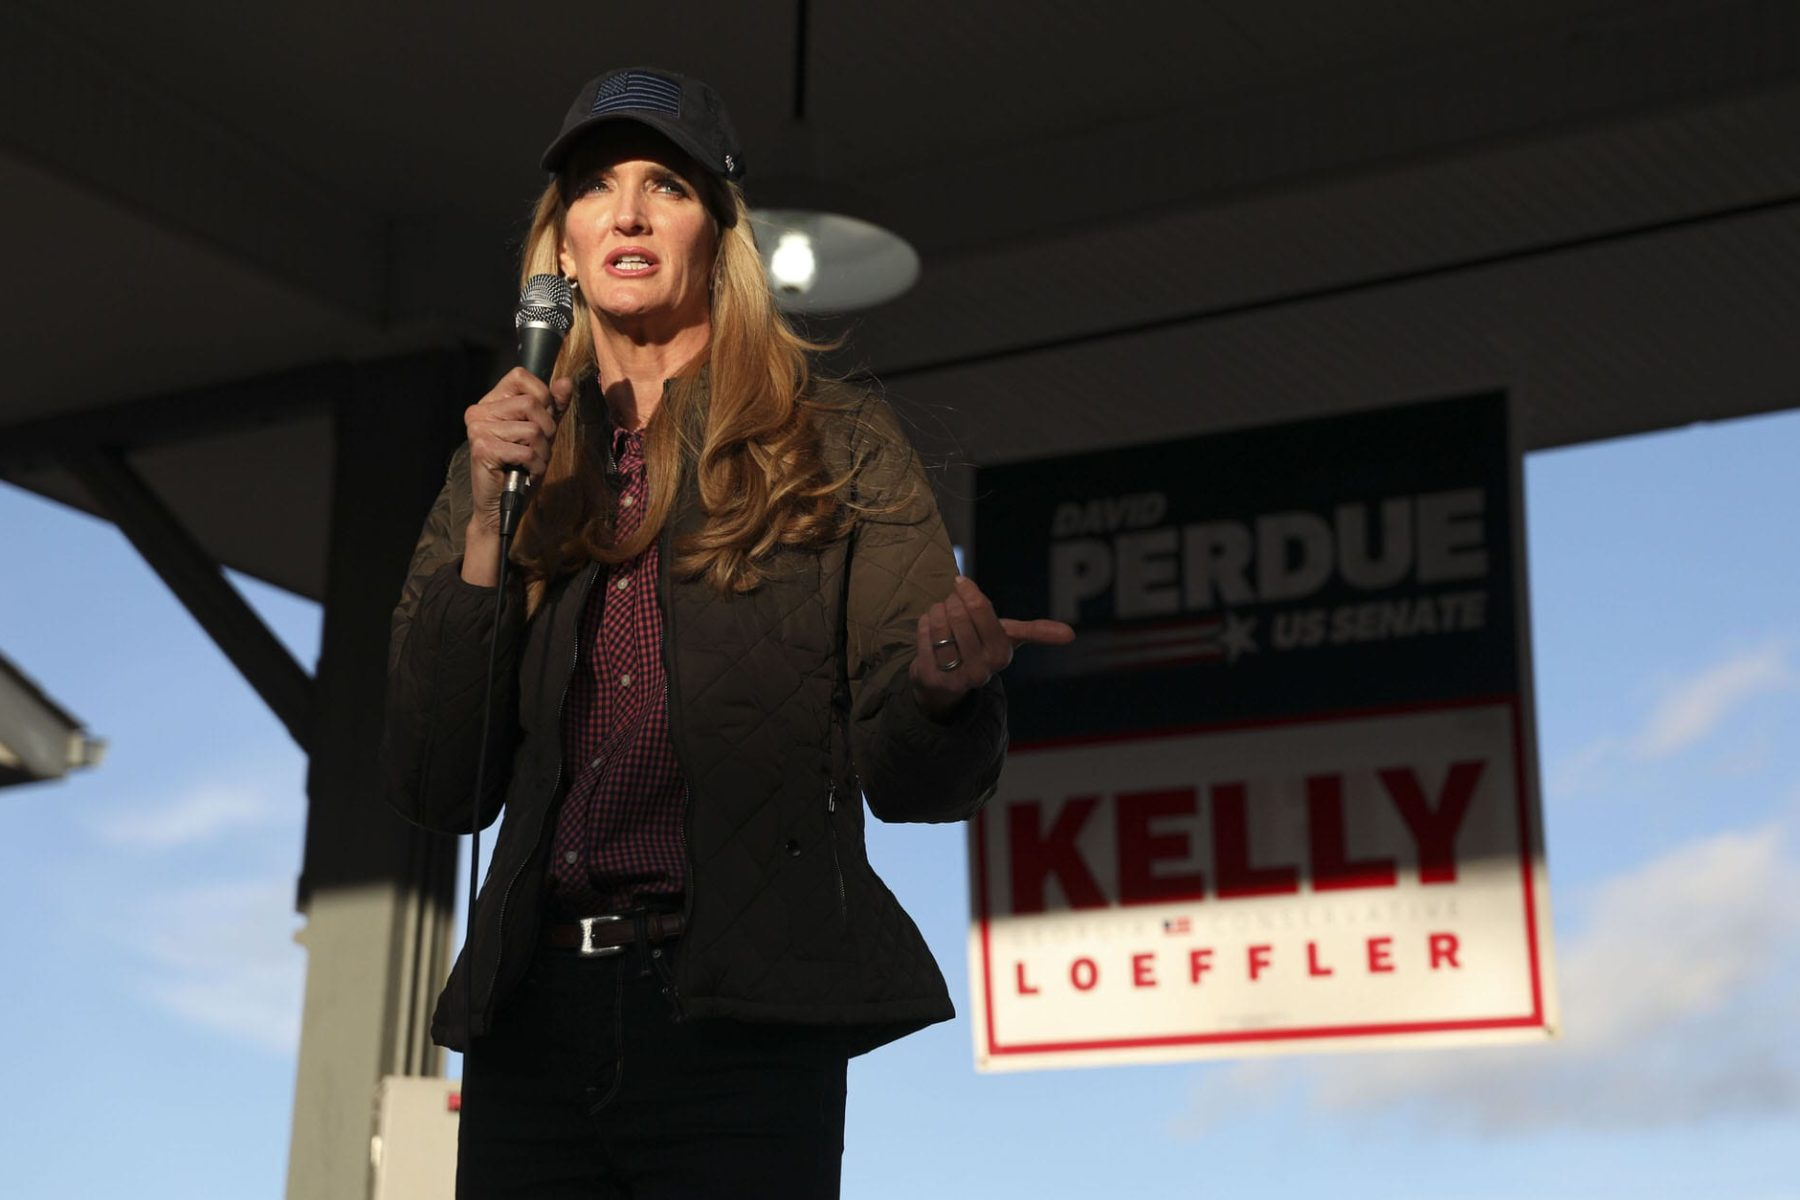 Senator Kelly Loeffler speaks to supporters during a rally.